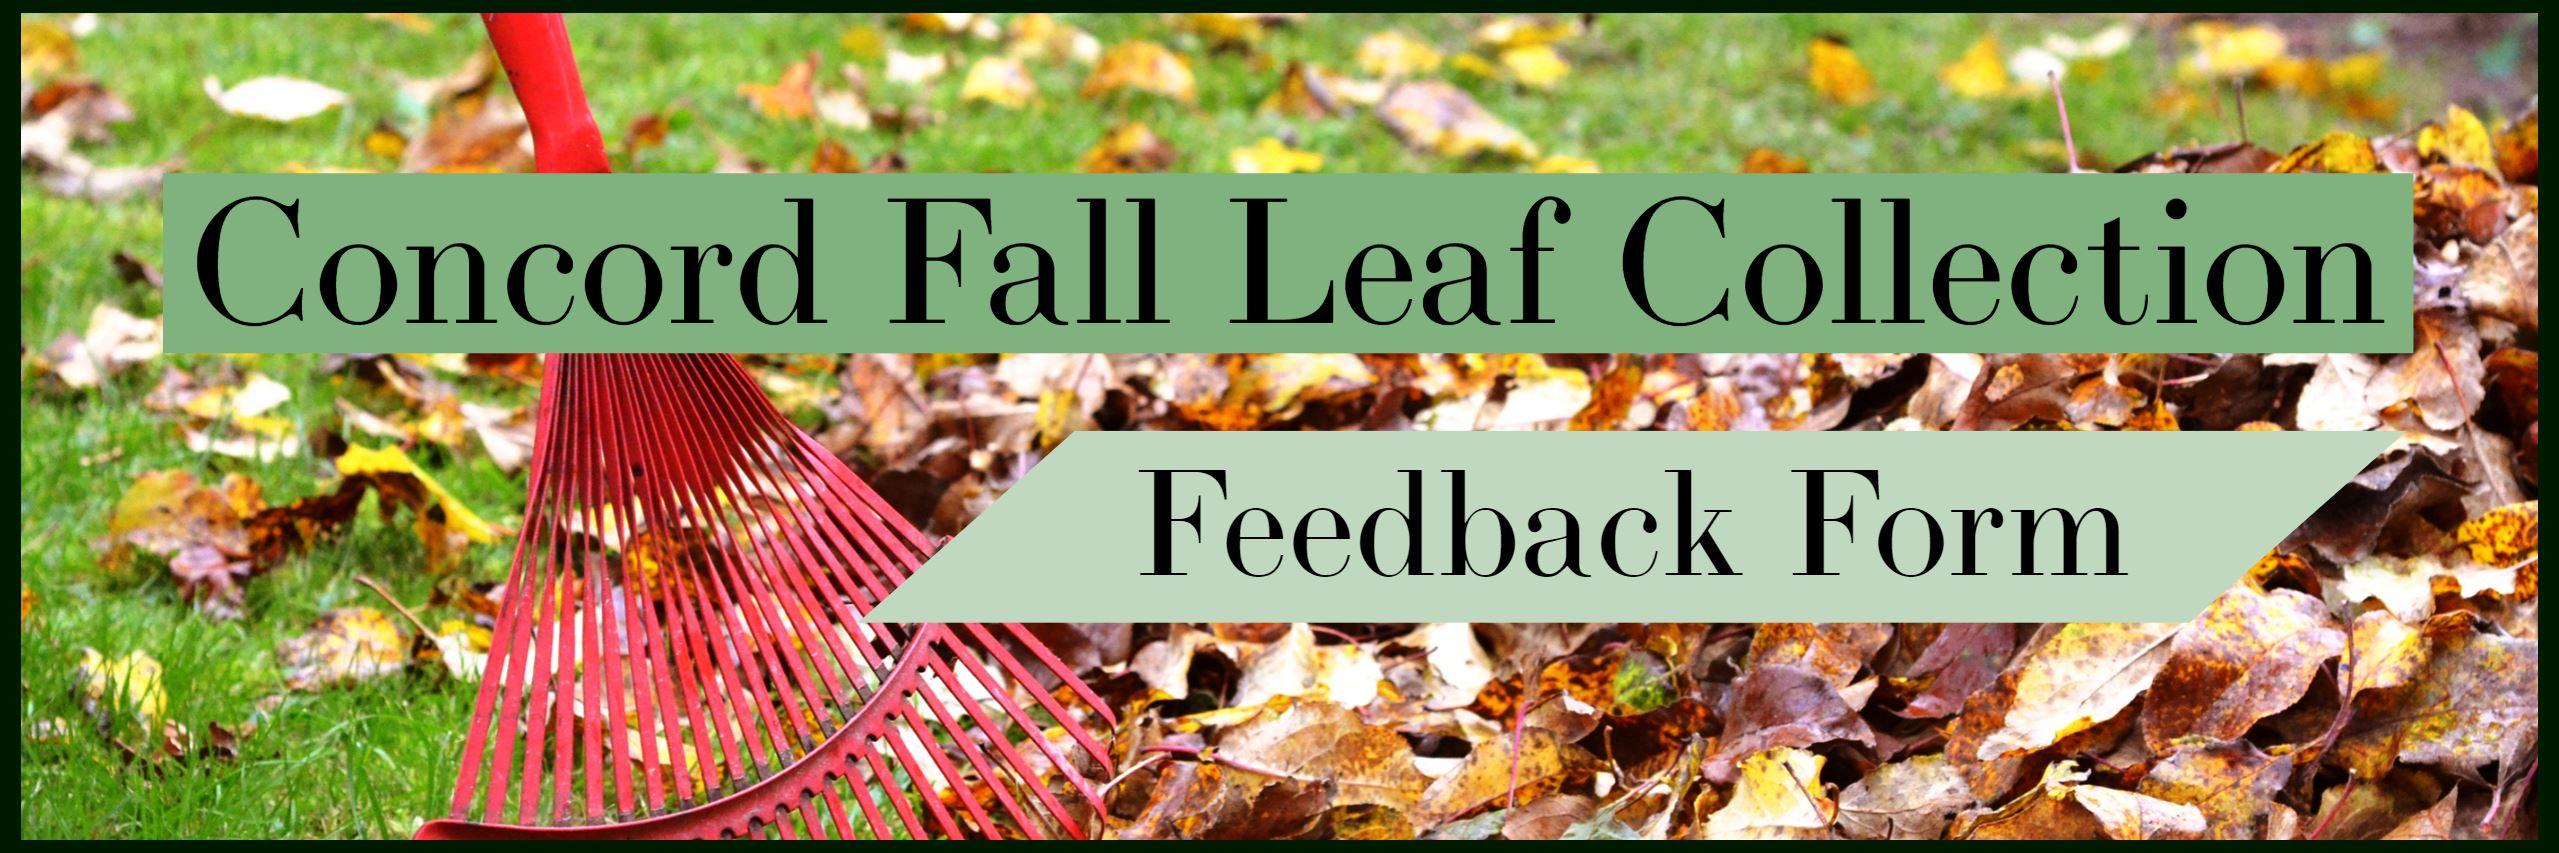 2018 Fall Leaf Feedback Form Banner Opens in new window